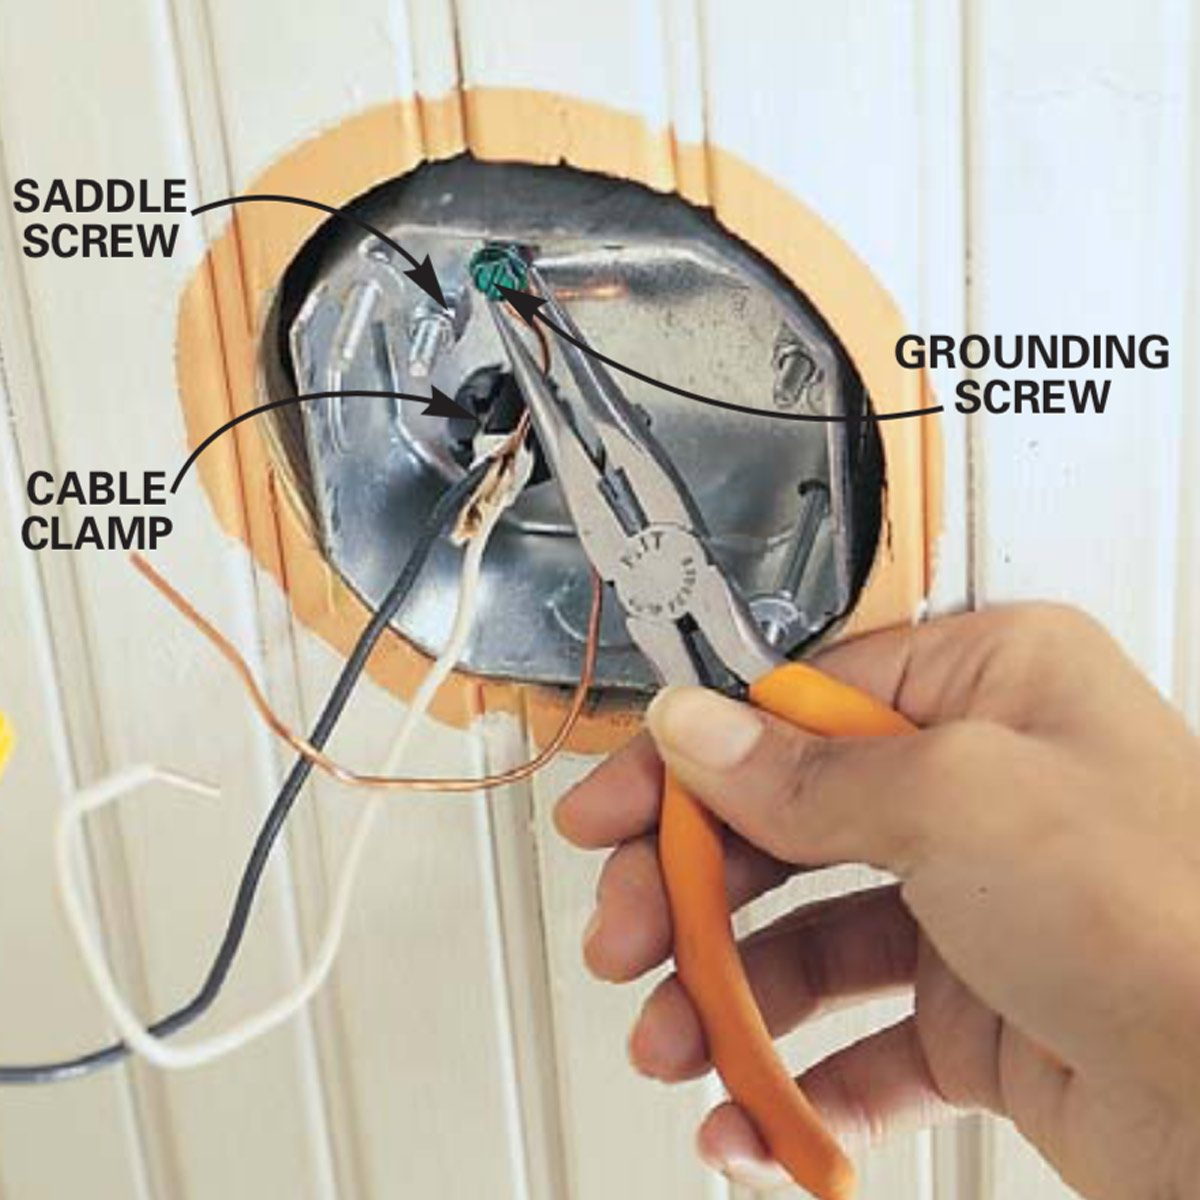 220v sub panel wiring diagram 986 international tractor how to install ceiling fans family handyman the